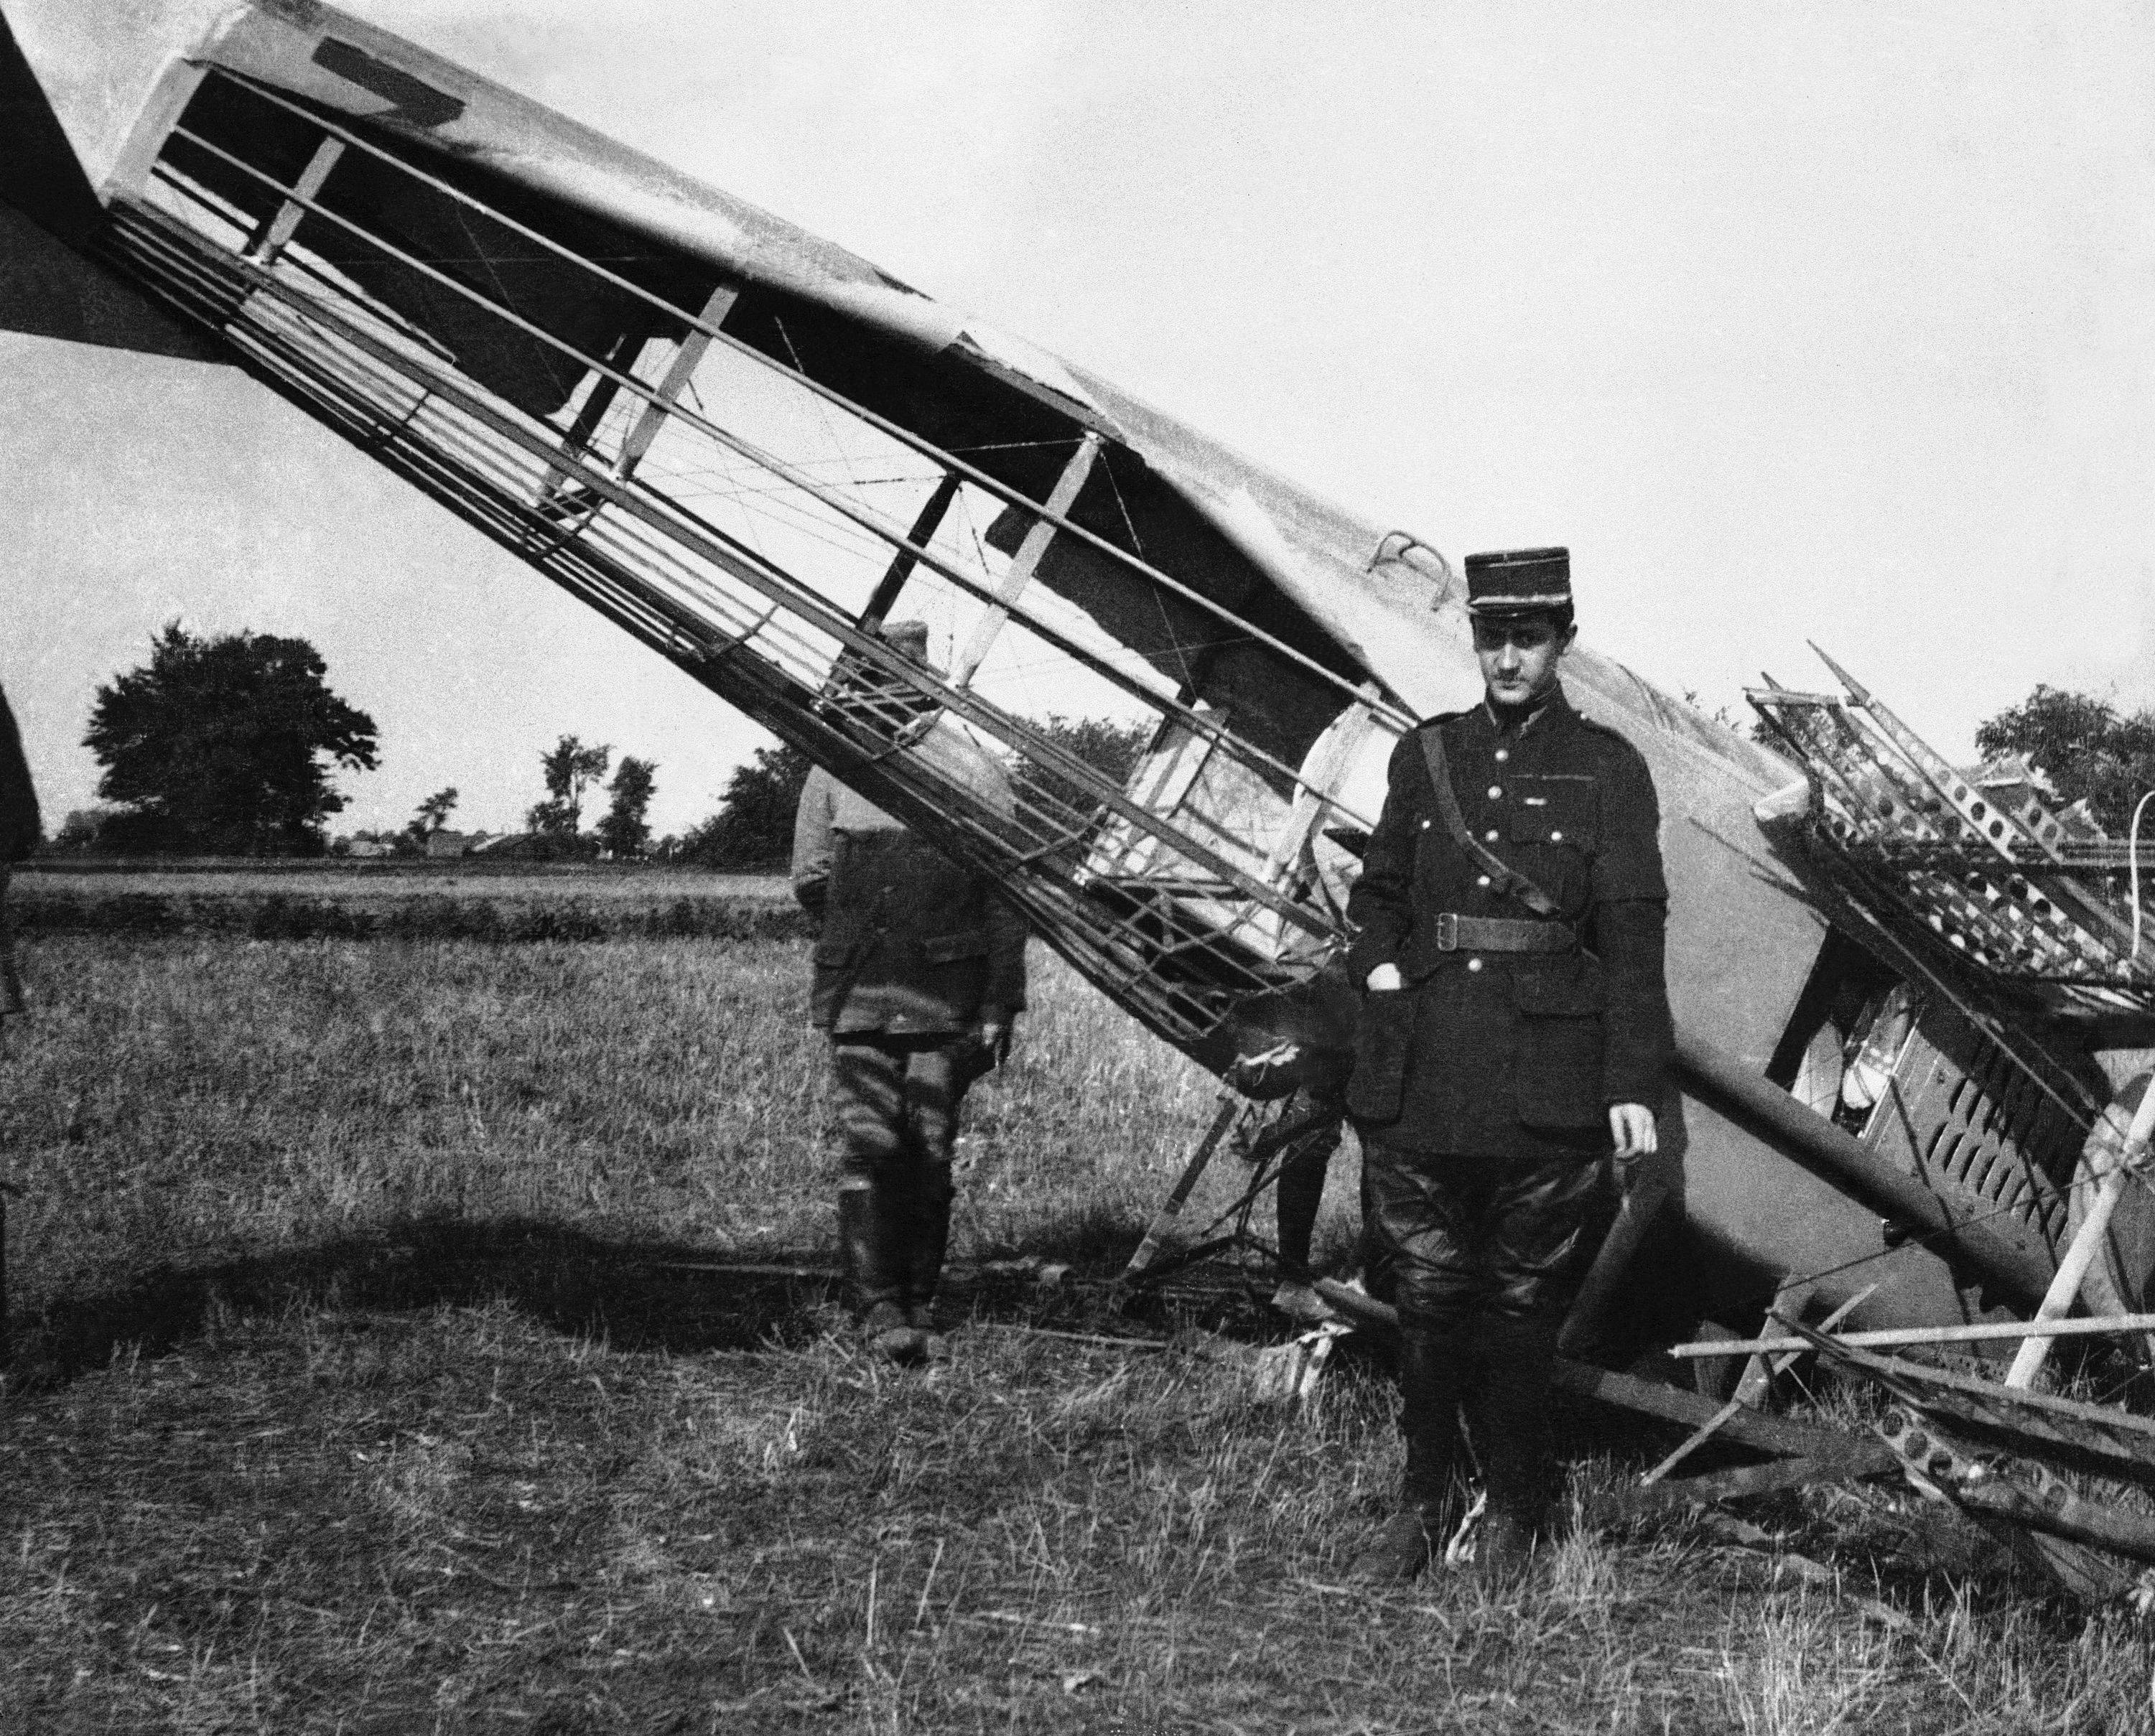 58 OF 100: In this Sept. 24, 1916 file photo, French Capt. Georges Guynemer in front of his shot-down plane in Piennes, France, during World War I.